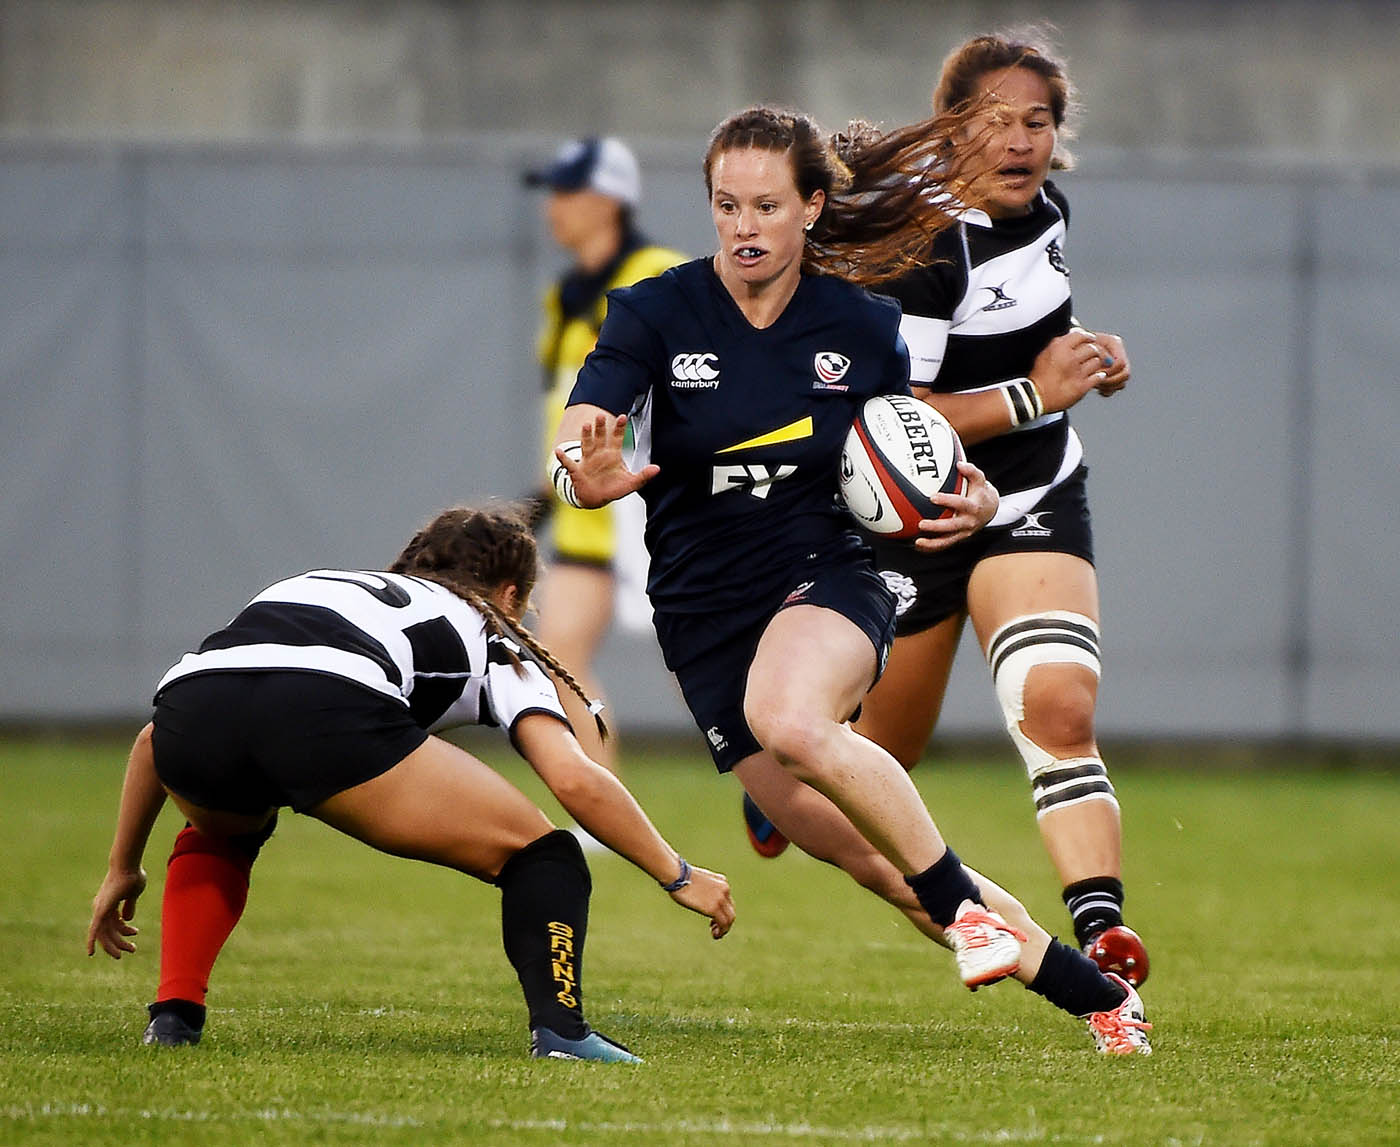 Women's rugby is part of the programming for USA Rugby. Photo/USA Rugby